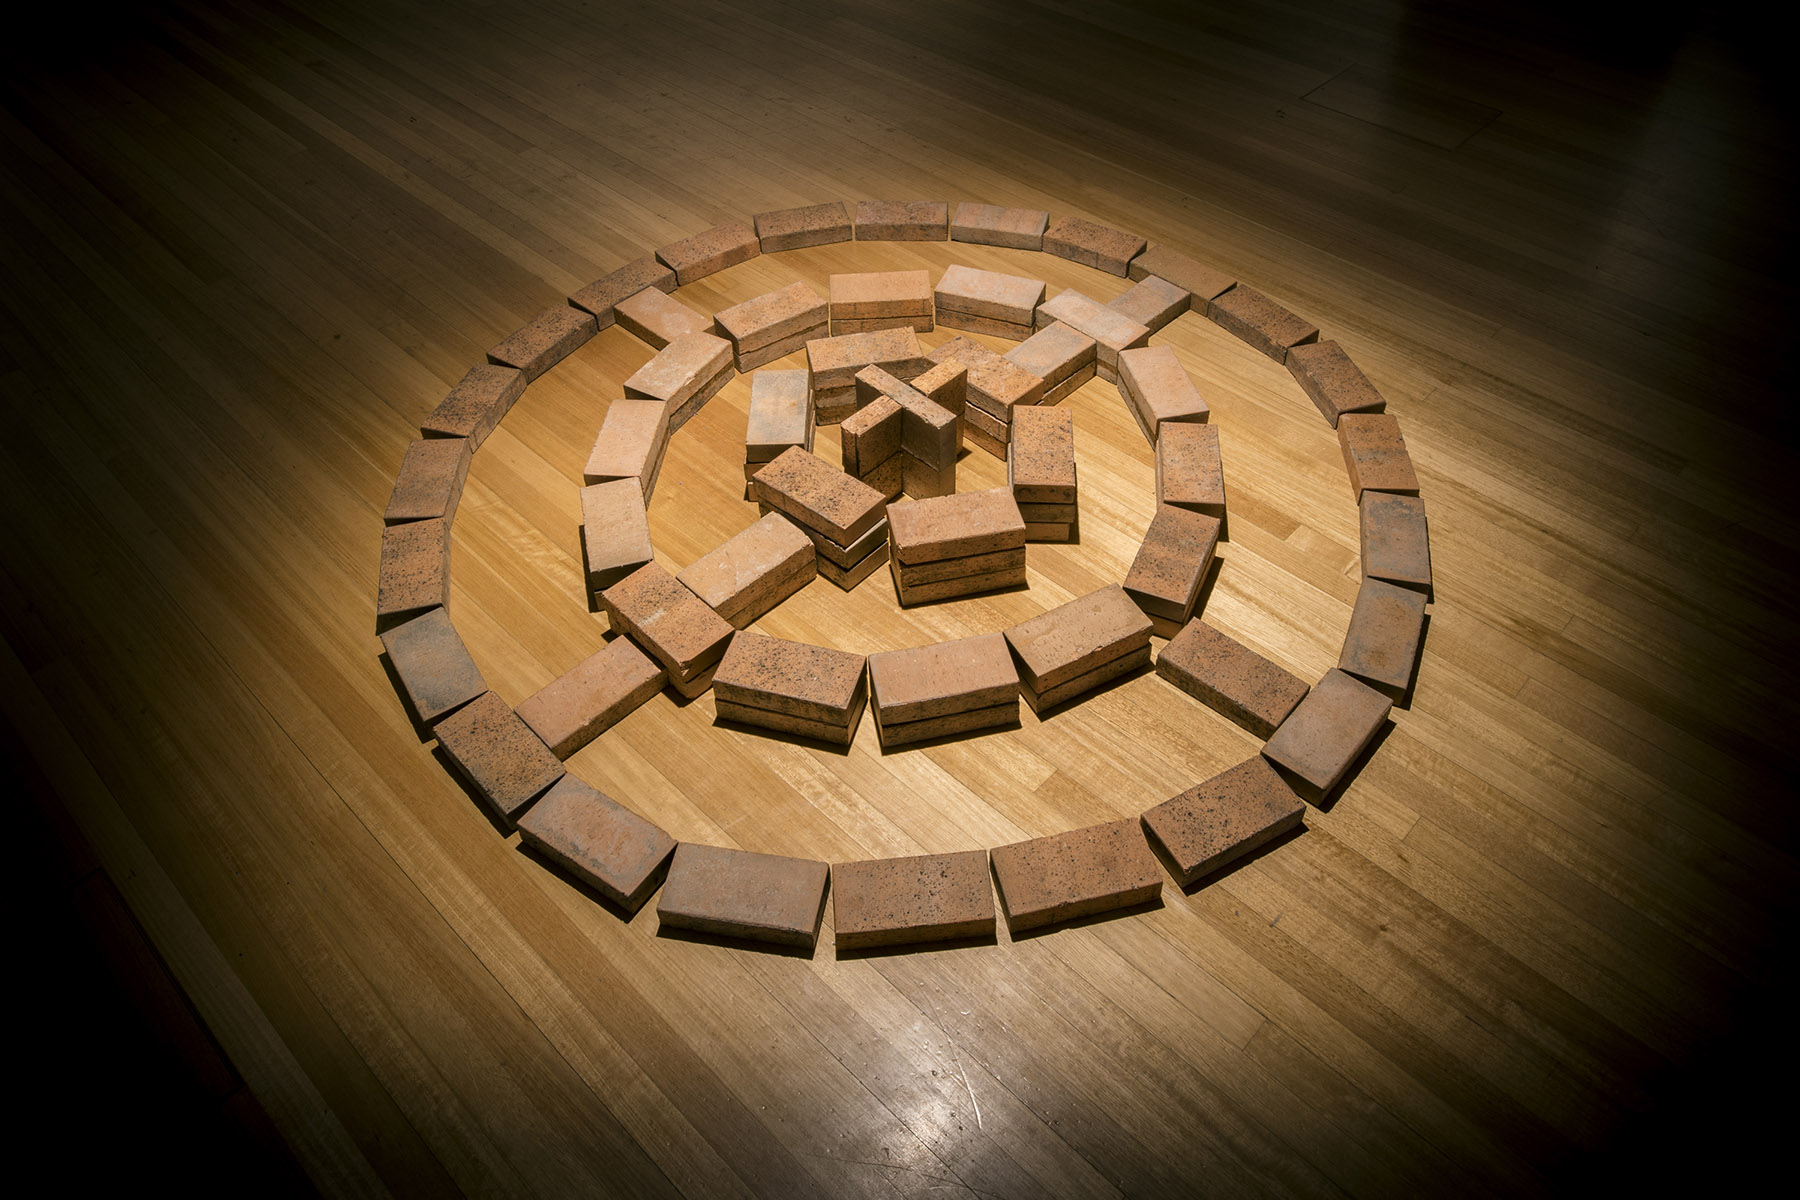 Bricks on the floor in the shape of a circle